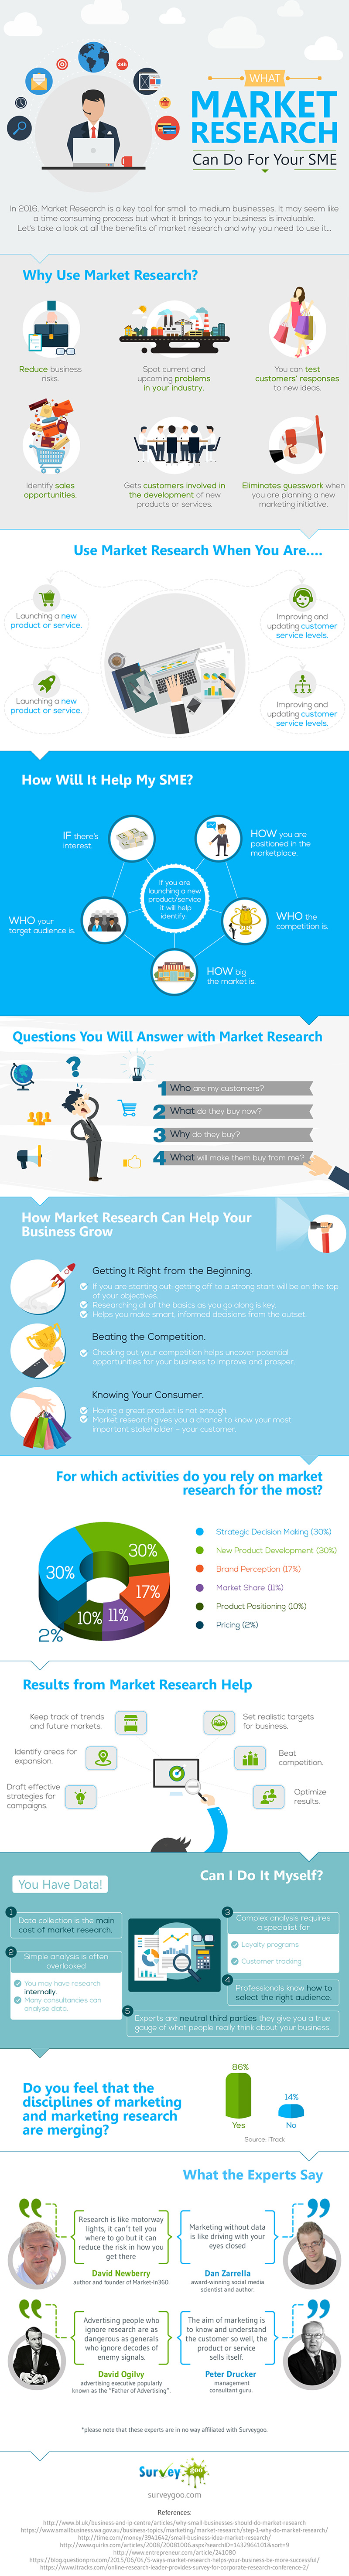 What-Market-Research-Can-Do-For-Your-SME